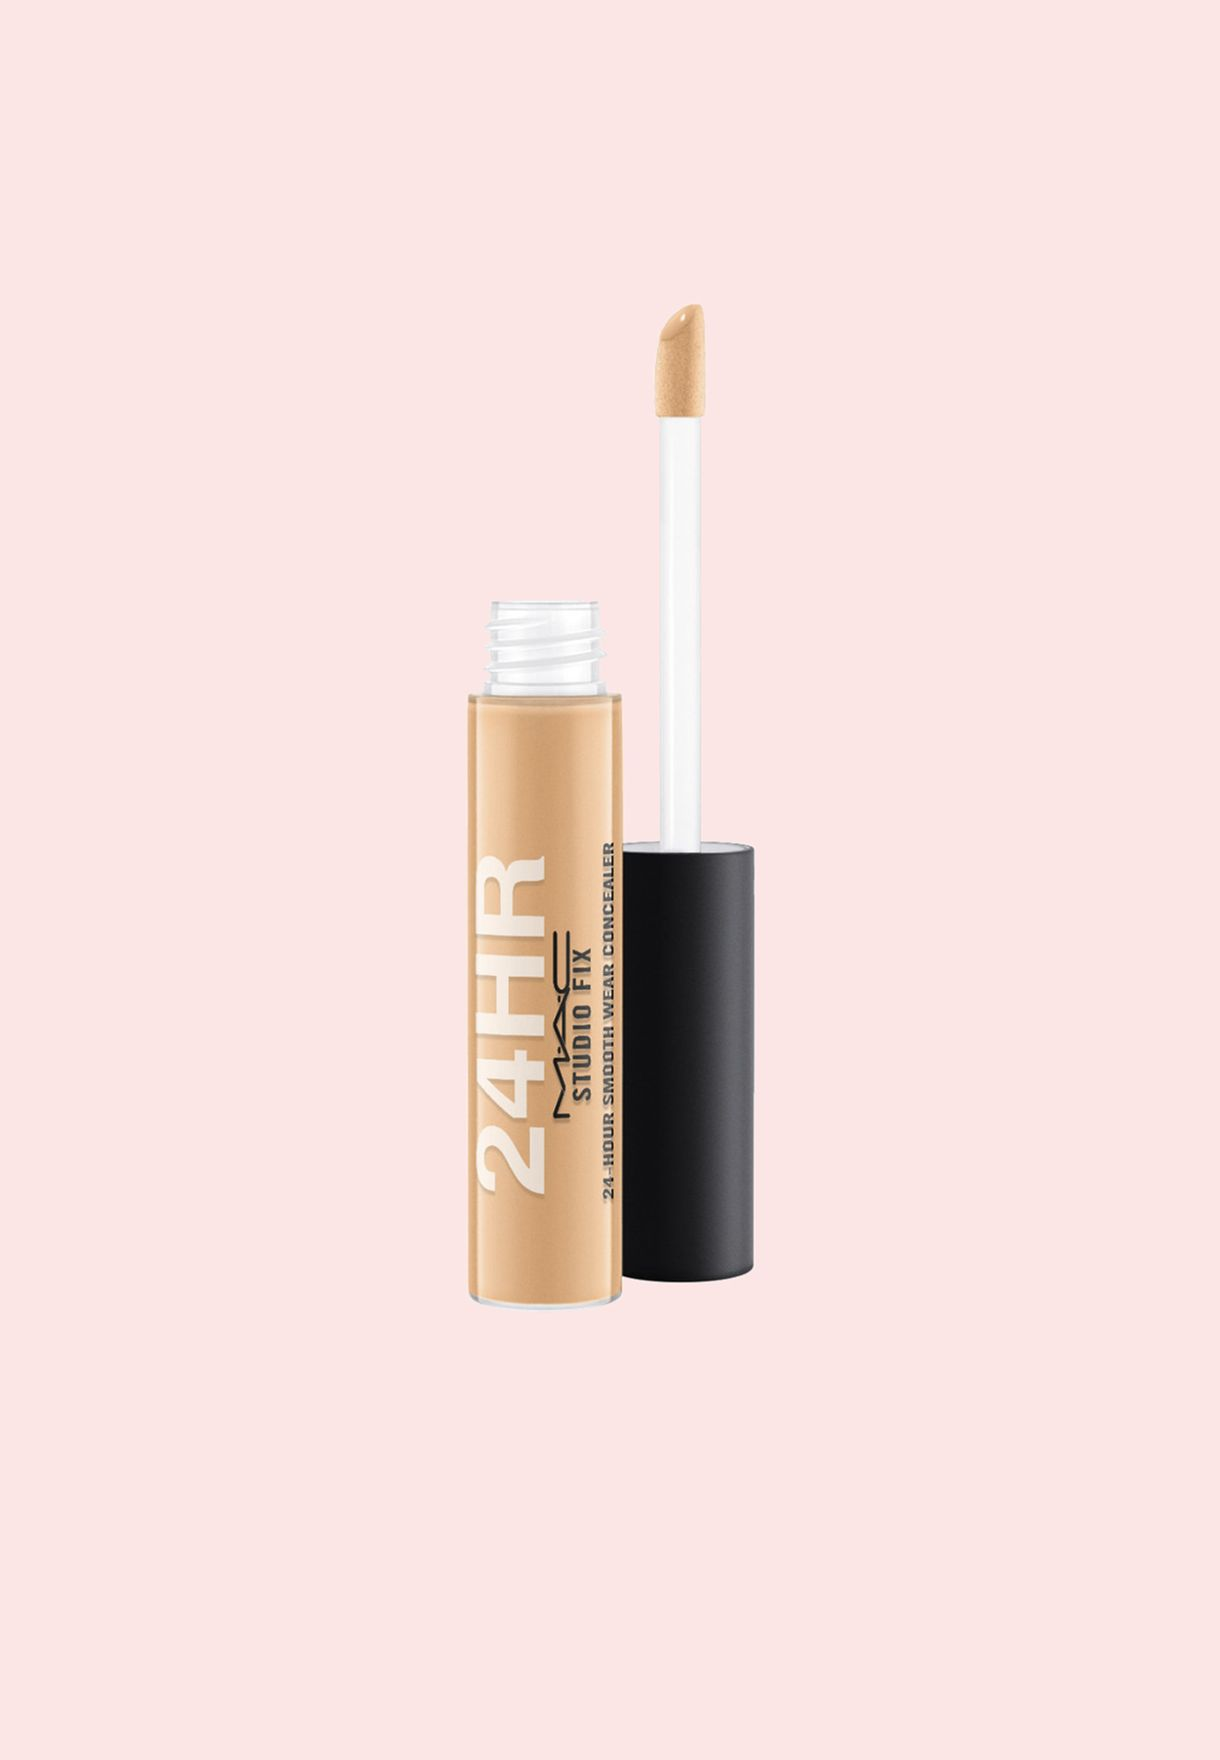 Studio Fix 24-Hour Smooth Wear Concealer - NC42